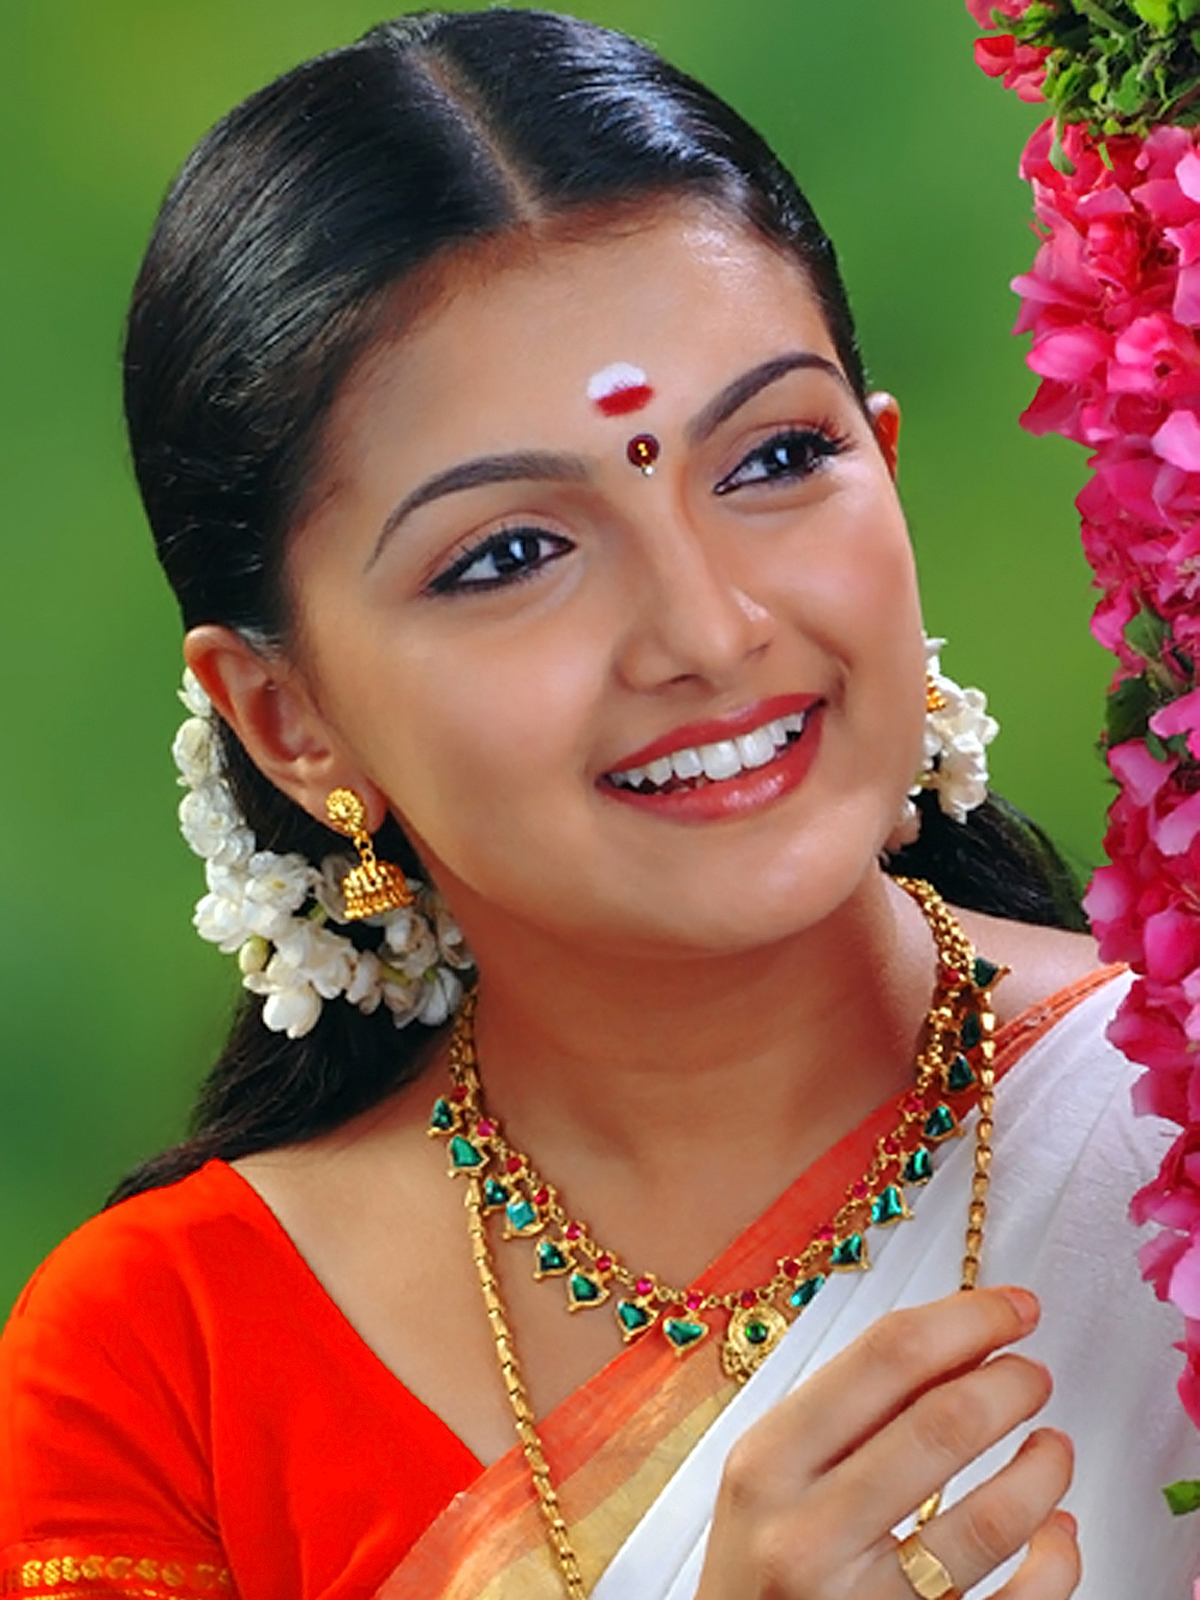 Cute And Lovely Images Of Actress Saranya Mohan - Cinejolly